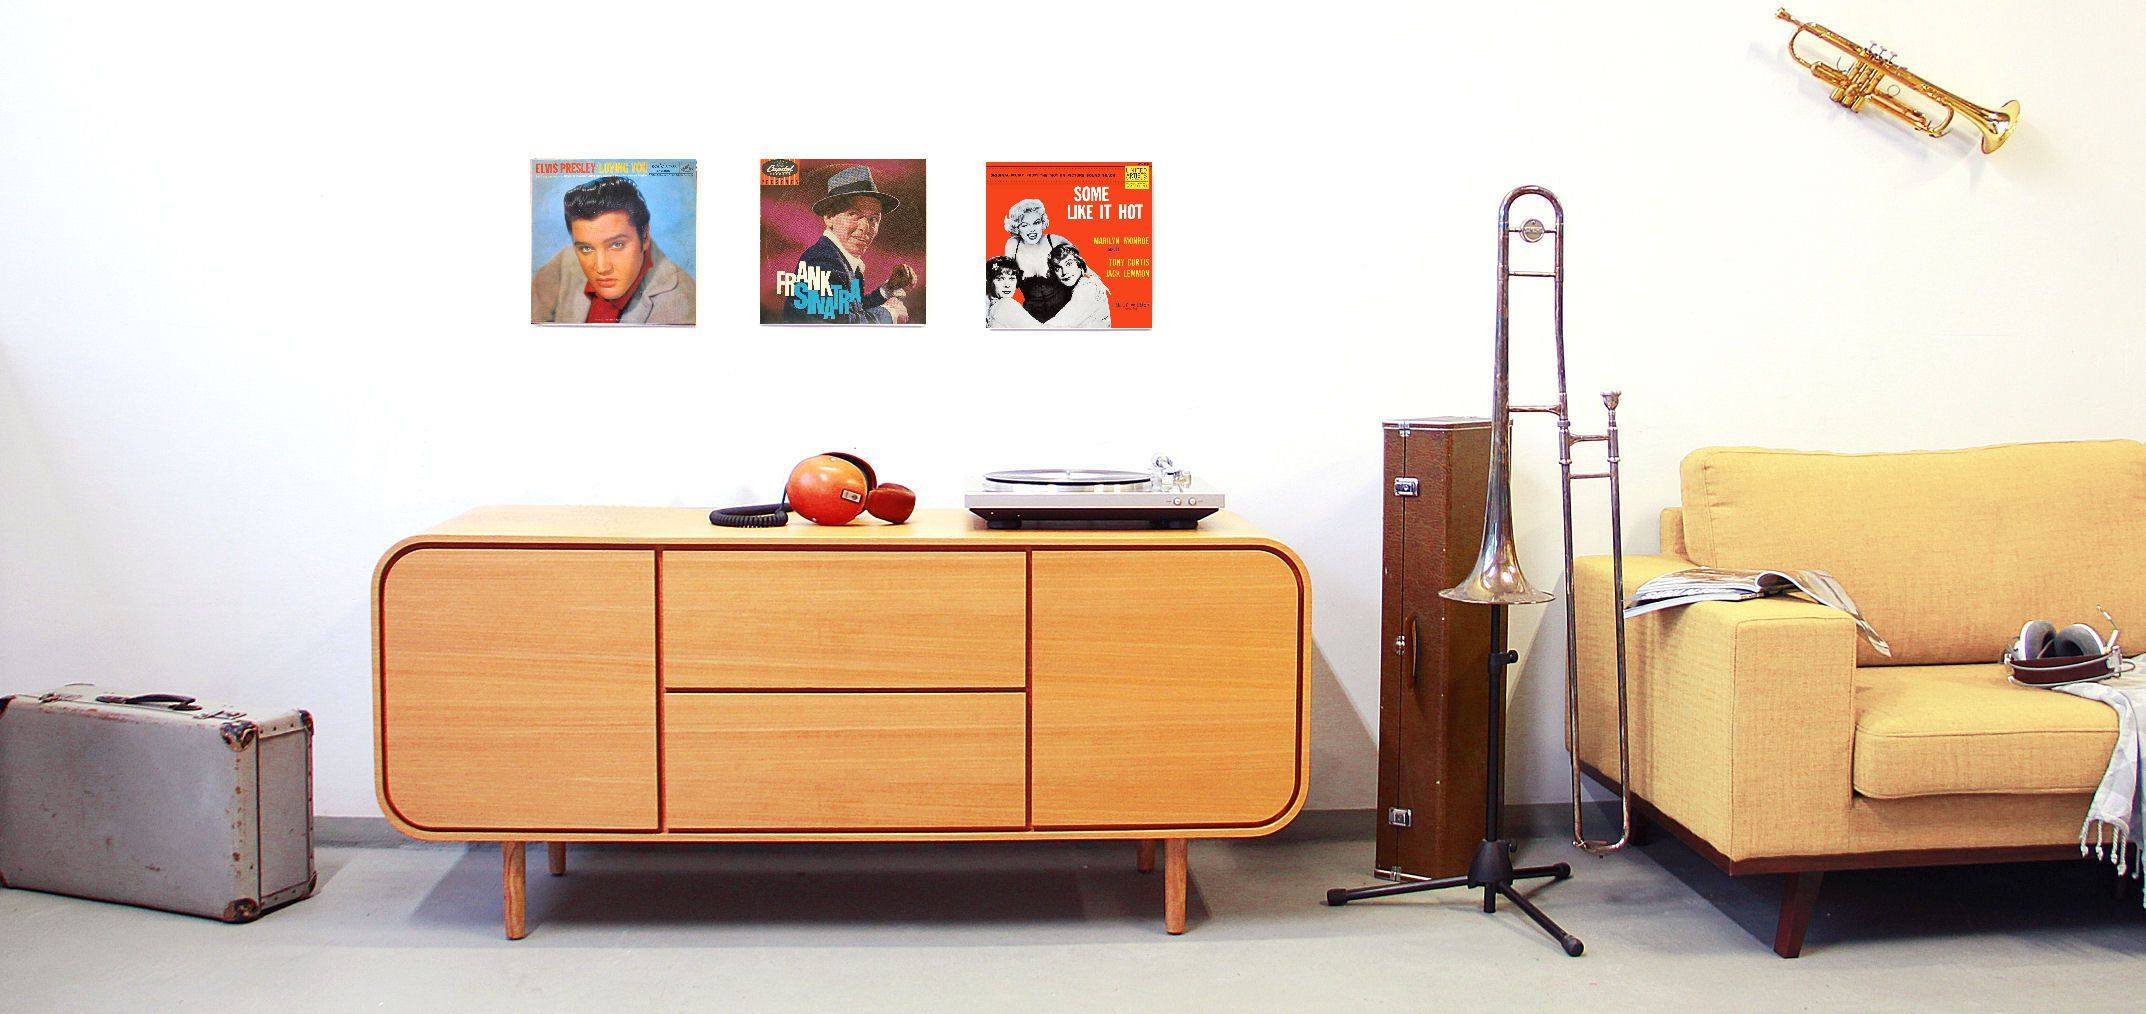 Kaiserlich, Vinyl Cover Display_11